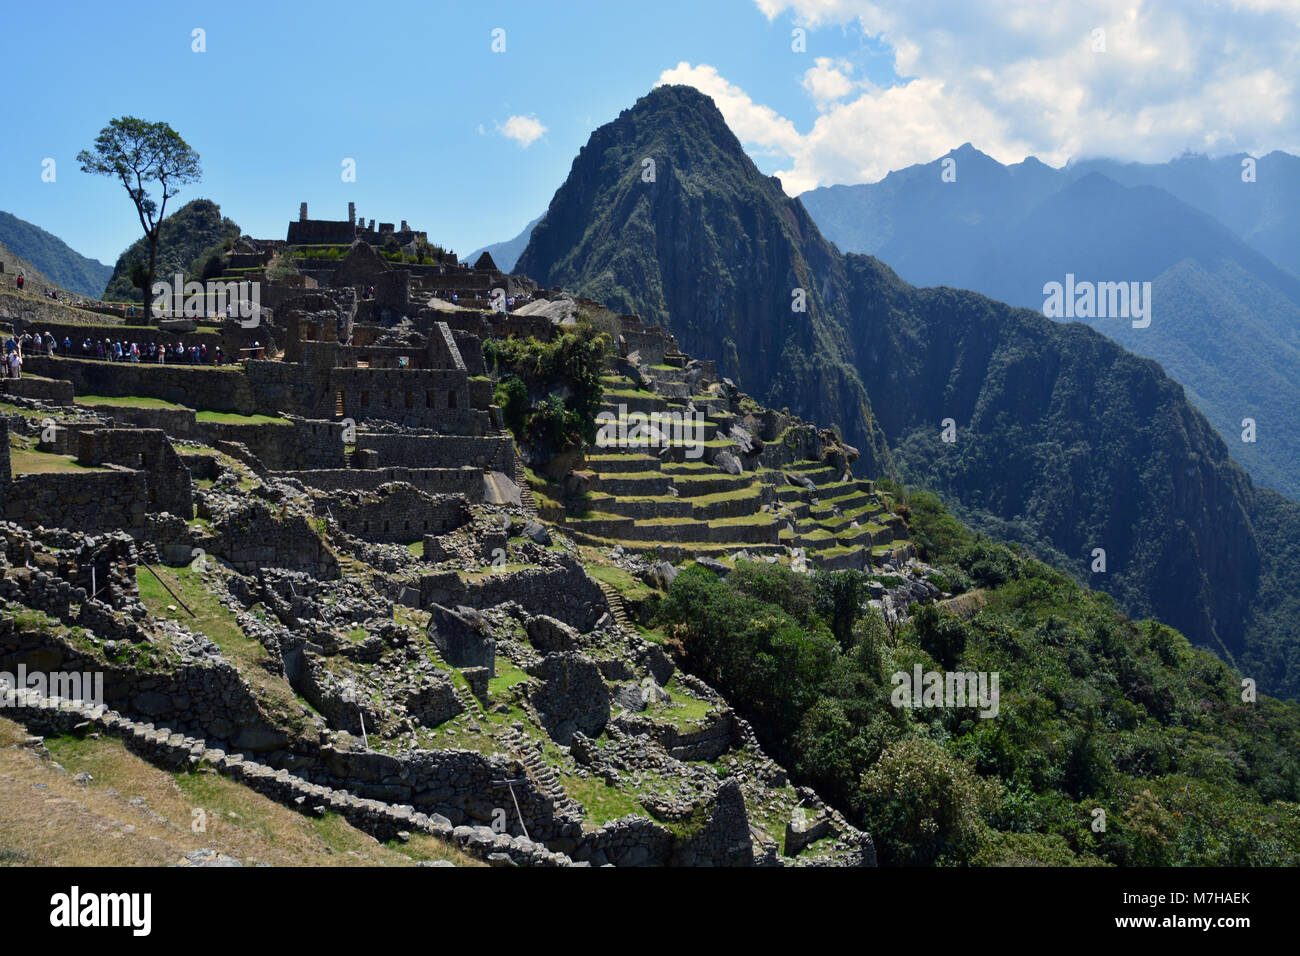 The mountain peak of Huayna Picchu stands guard over the old Incan city of Machu Picchu in the Andes Mountains of - Stock Image